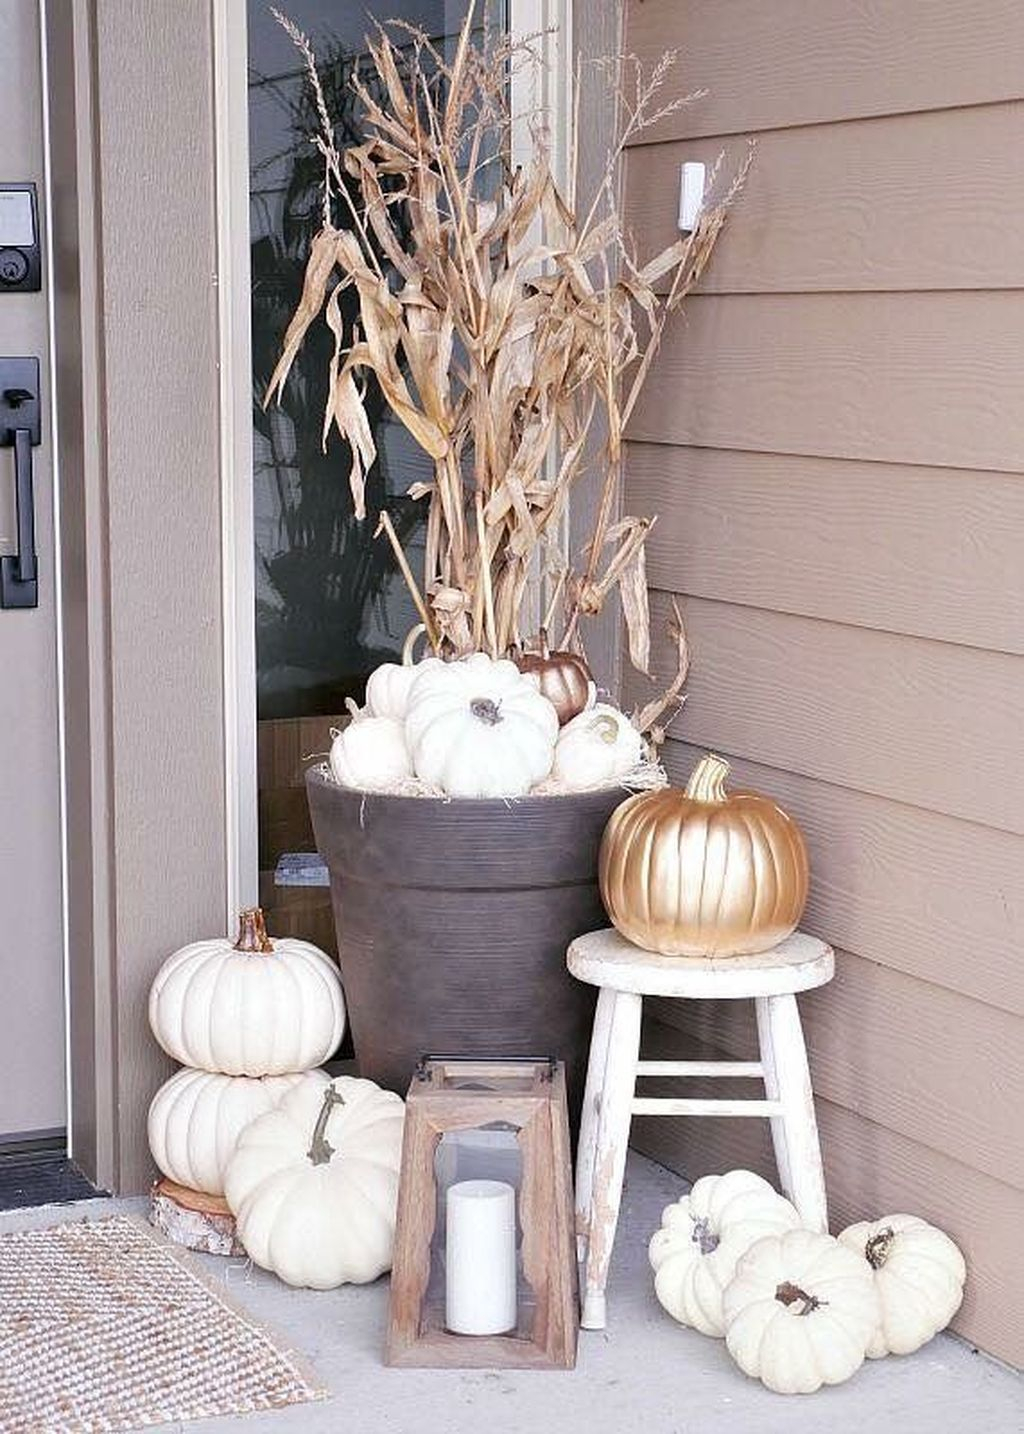 Inspiring Home Decor Design Ideas In Fall This Year 17